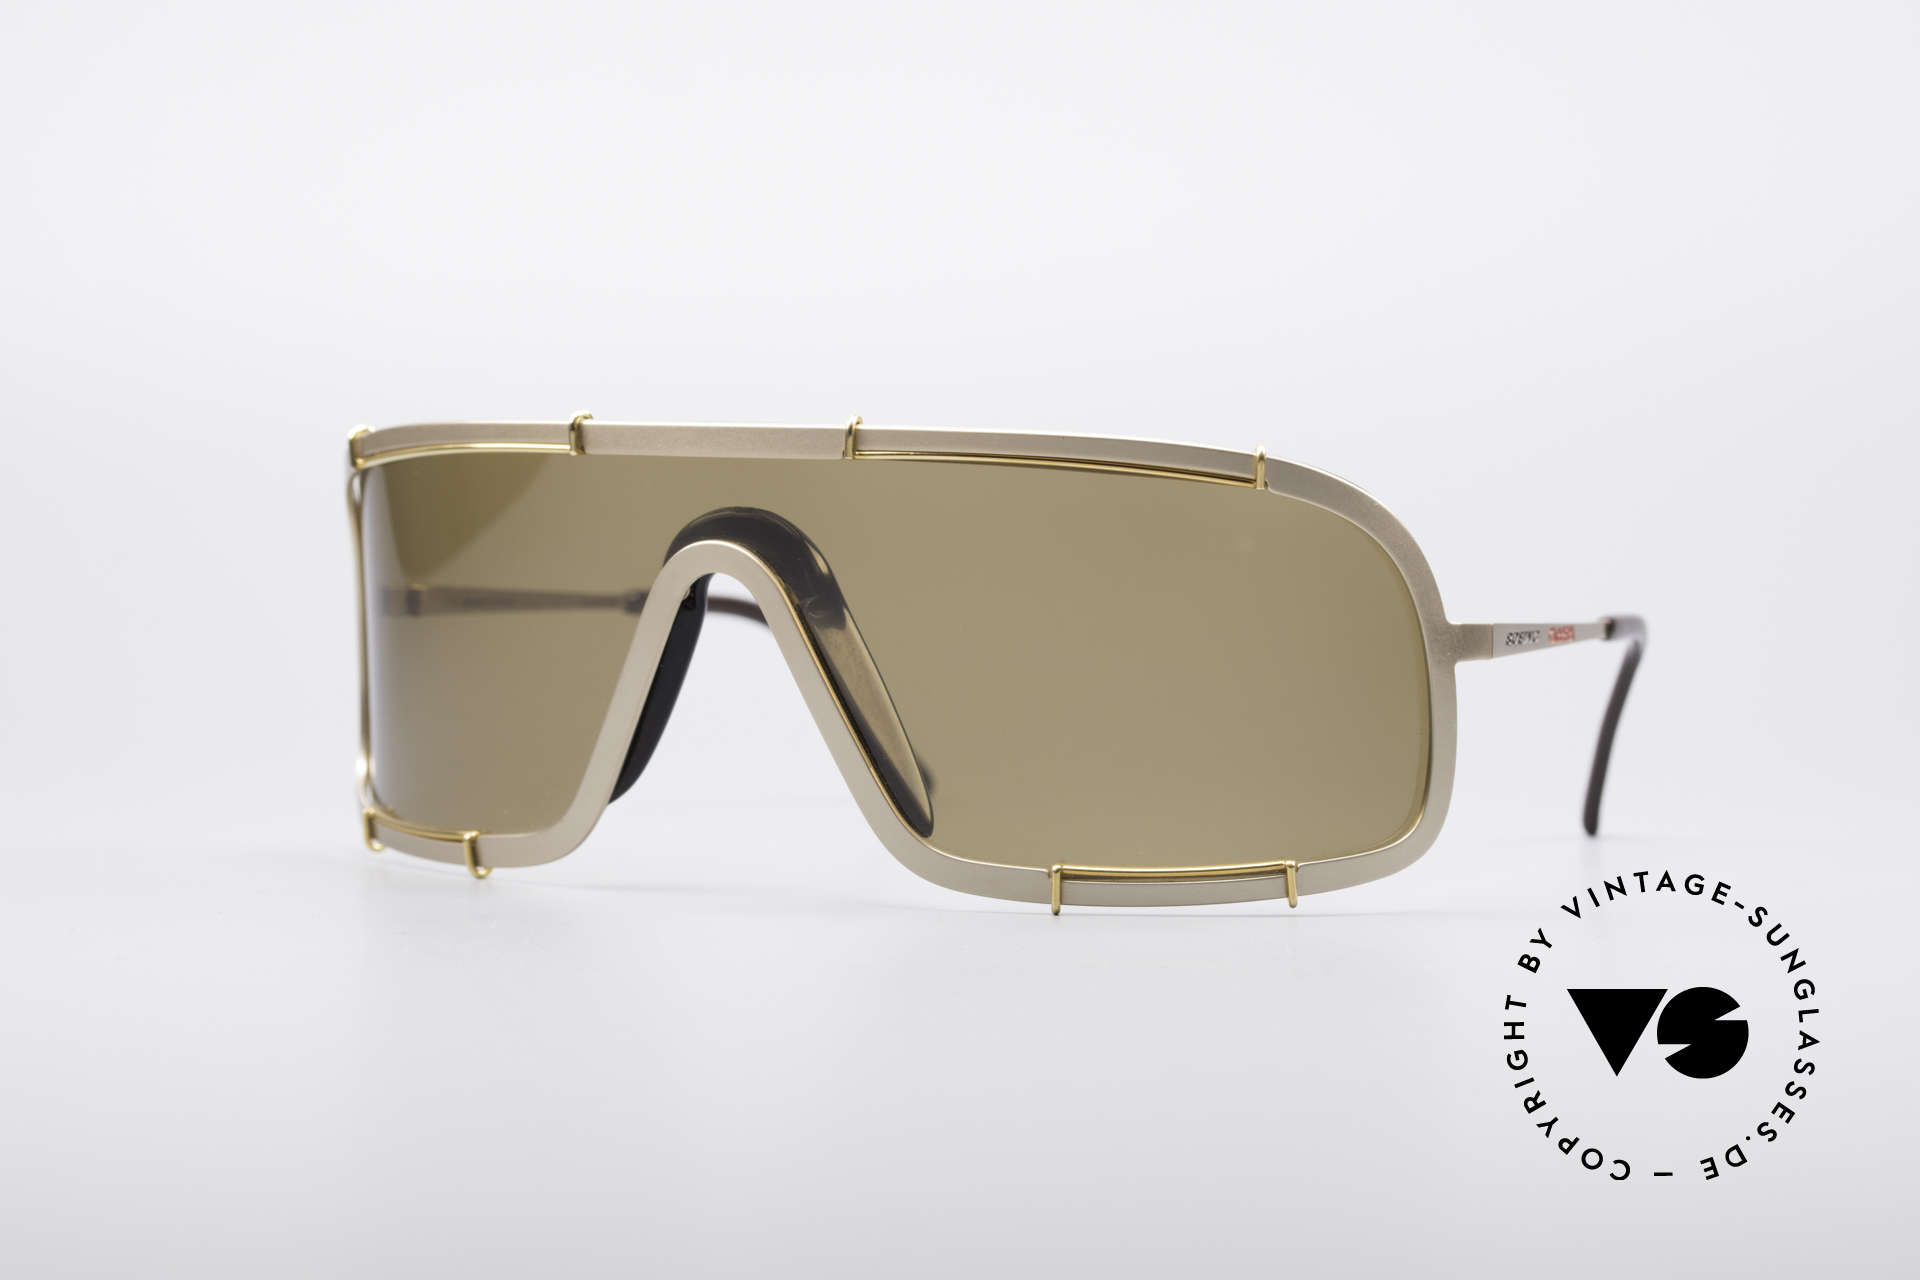 Boeing 5708 80's Luxury Pilots Shades, unbelievable rare model of the 80's BOEING Collection, Made for Men